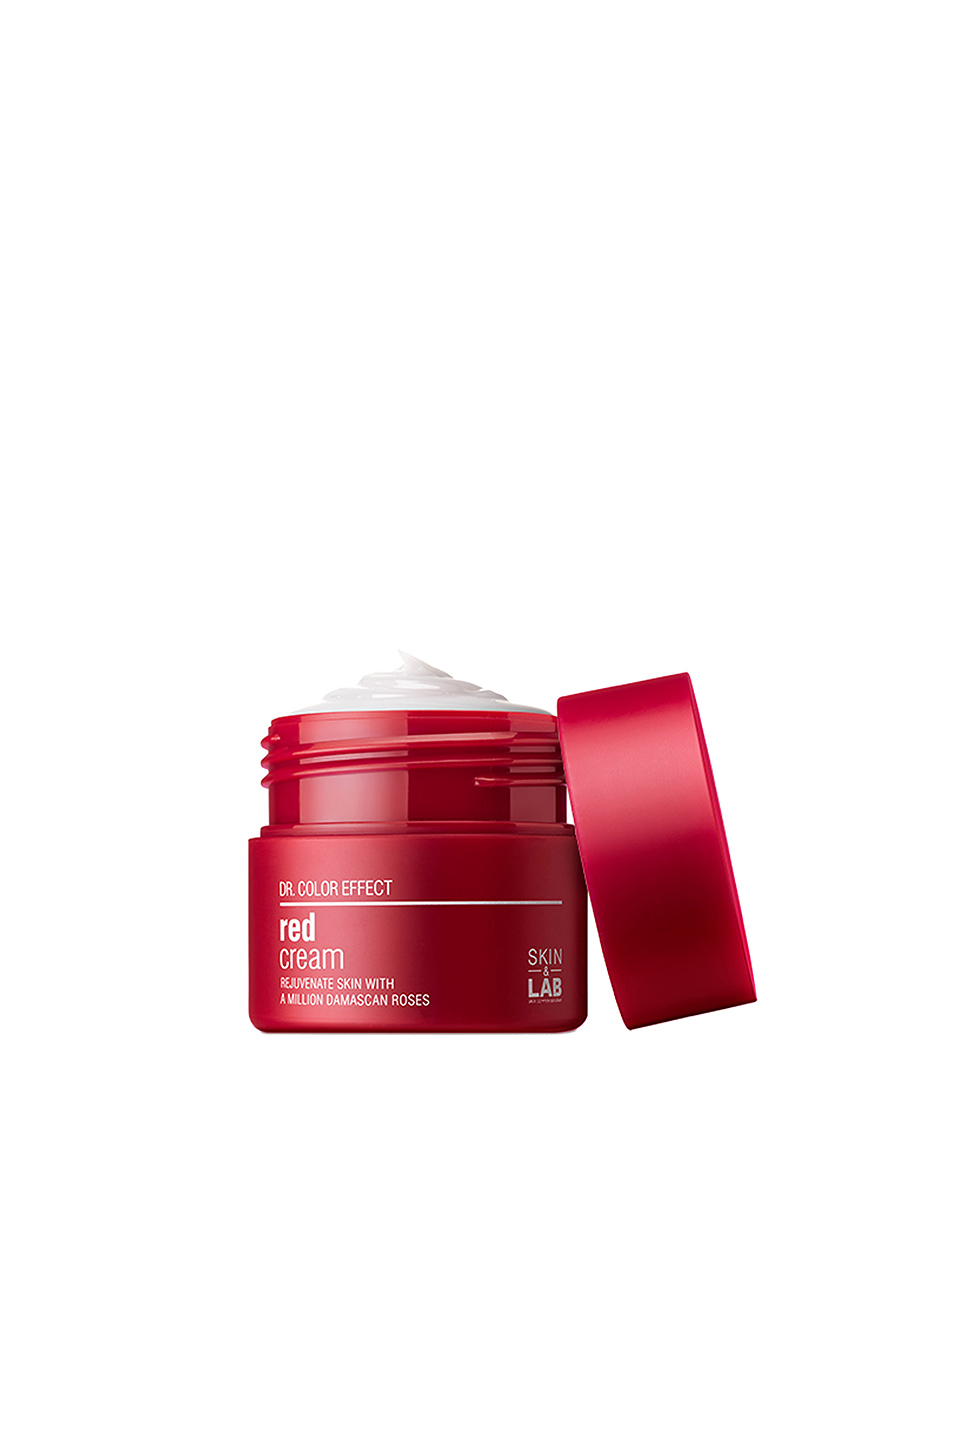 SKIN&LAB Red Cream in